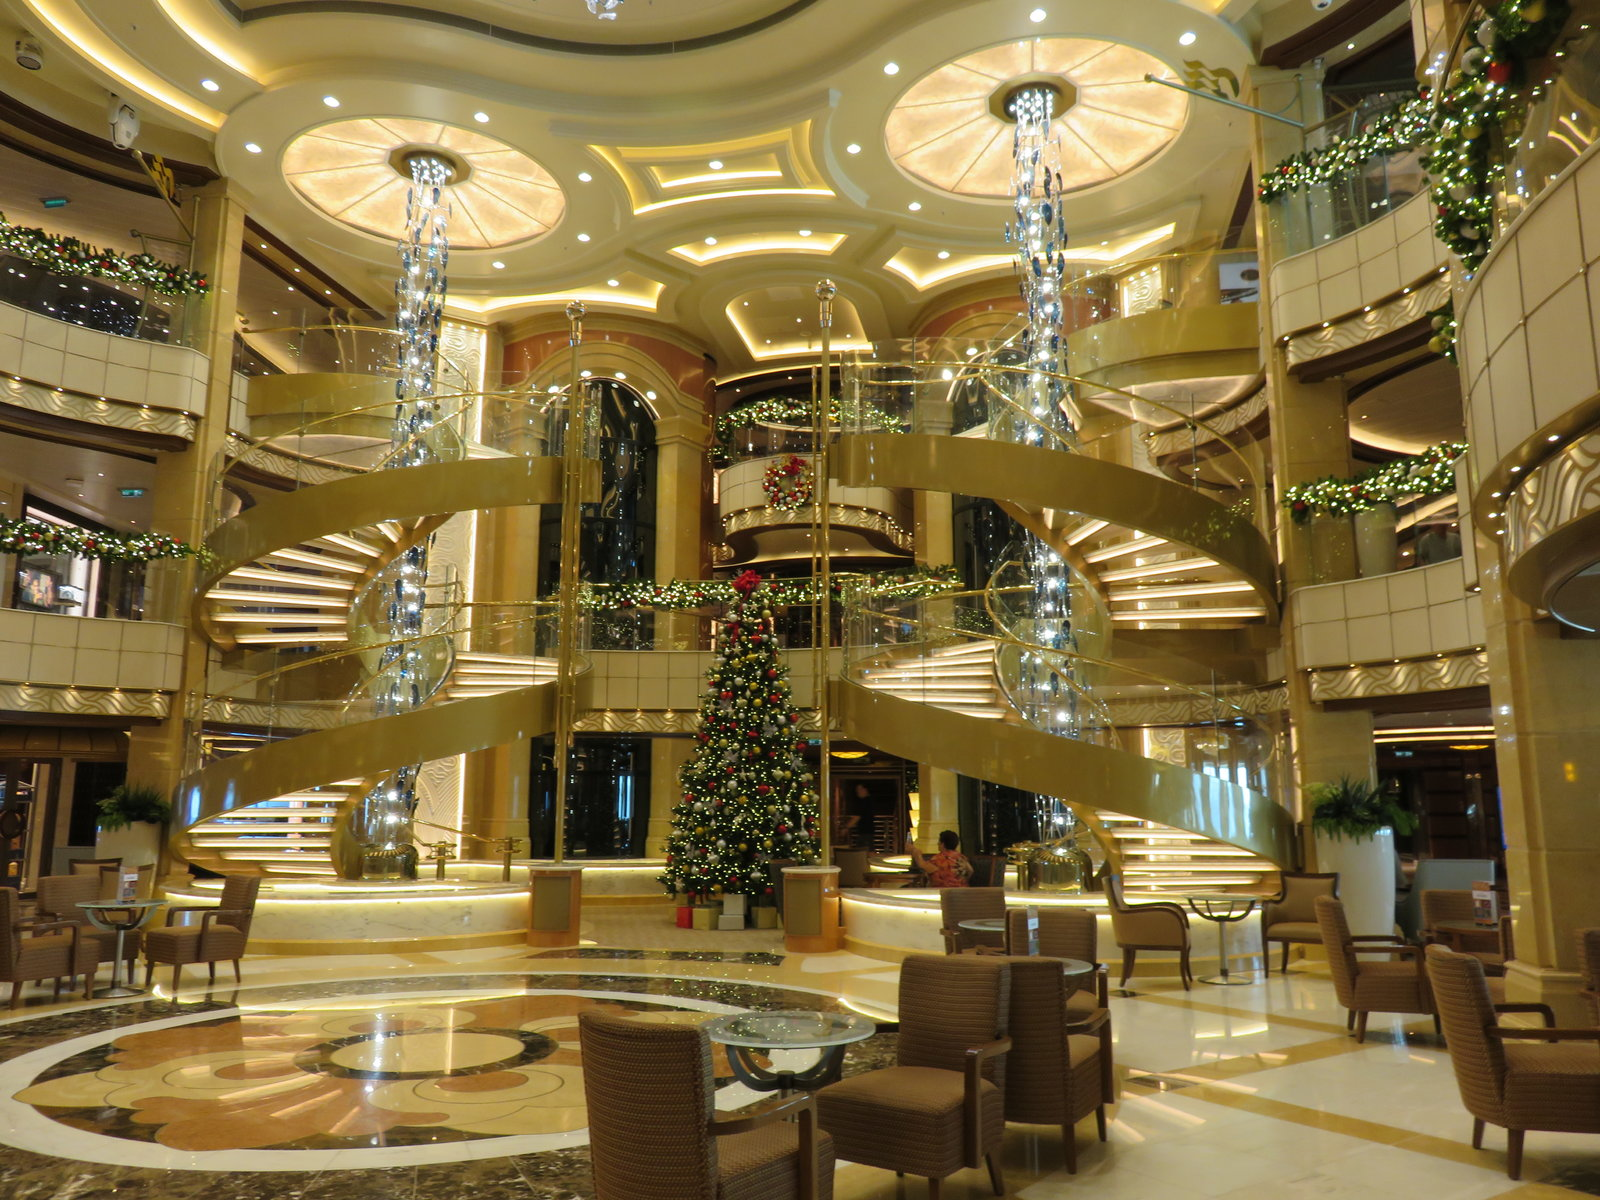 SKY Princess - Atrium - decorated for Christmas